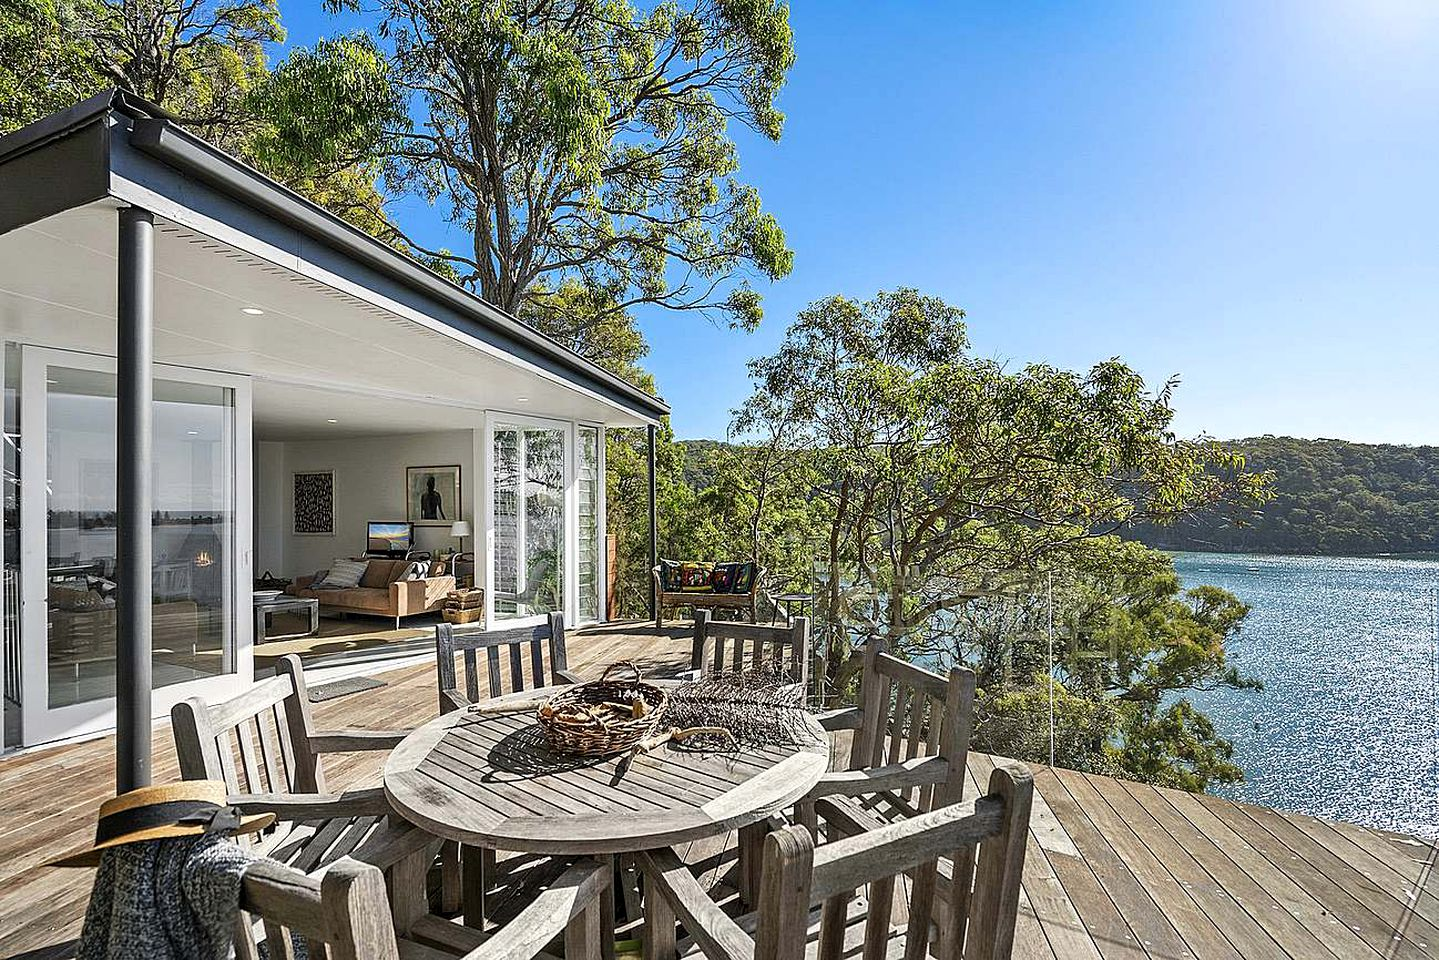 Right on the shores of Pittwater and surrounded by green trees lies this charming beachfront cabin. NSW is gorgeous!